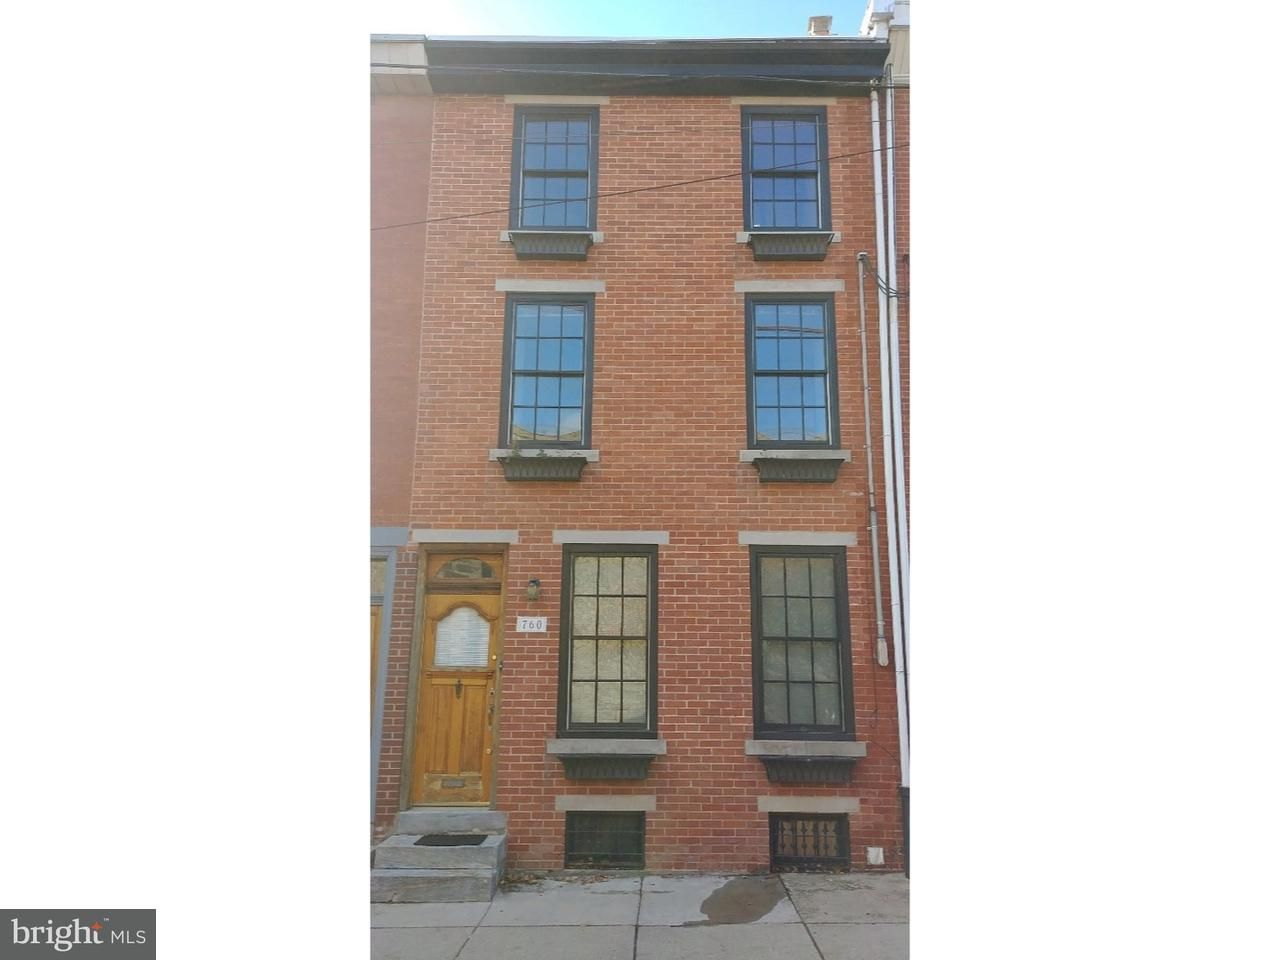 760 N 22nd St, Philadelphia, PA 19130 - Estimate and Home Details ...